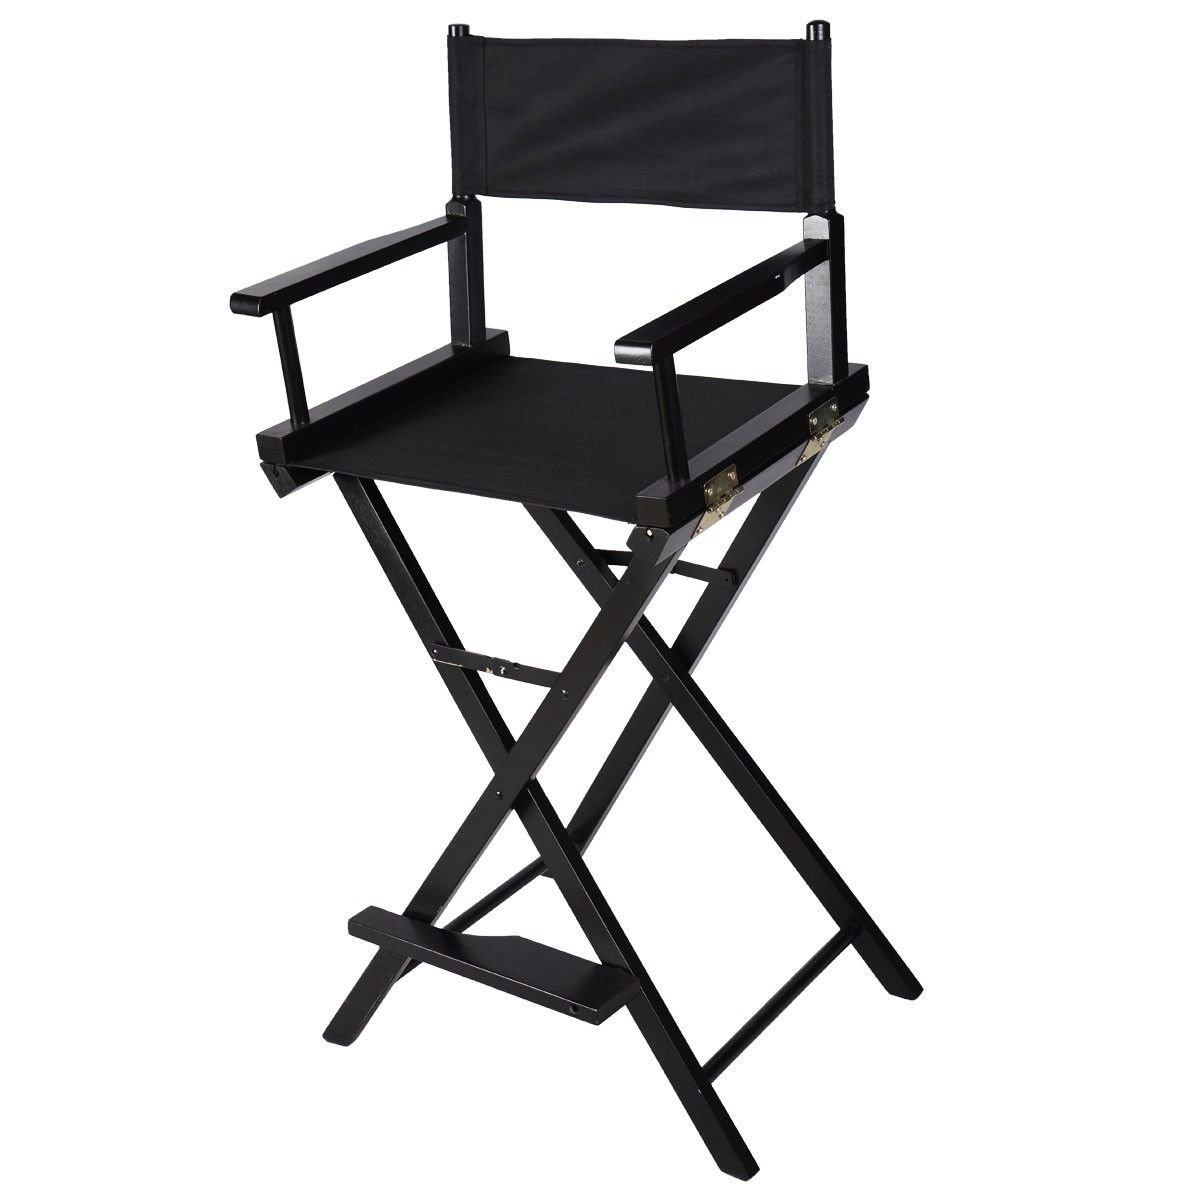 New Professional Makeup Artist Directors Chair Wood Light Weight Foldable Black